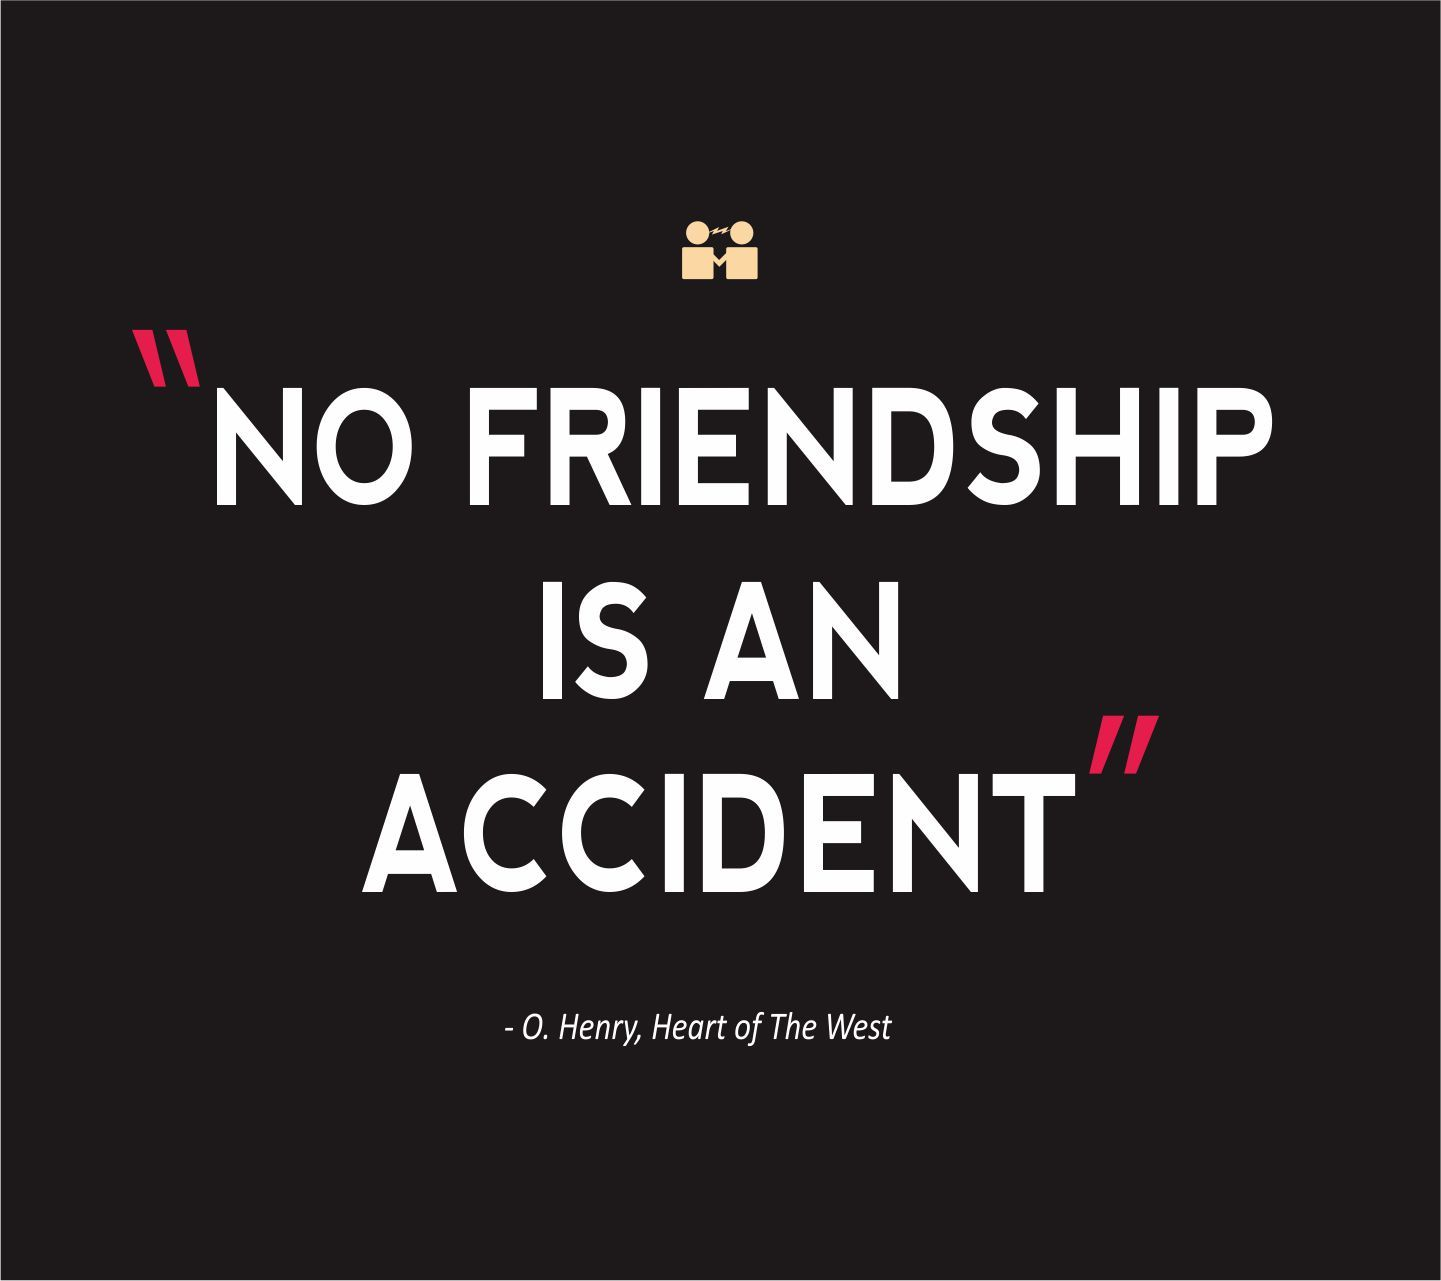 Motivational Quotes About Friendship Friendship Quotes No Friendship Is An Accident O Henry Heart Of